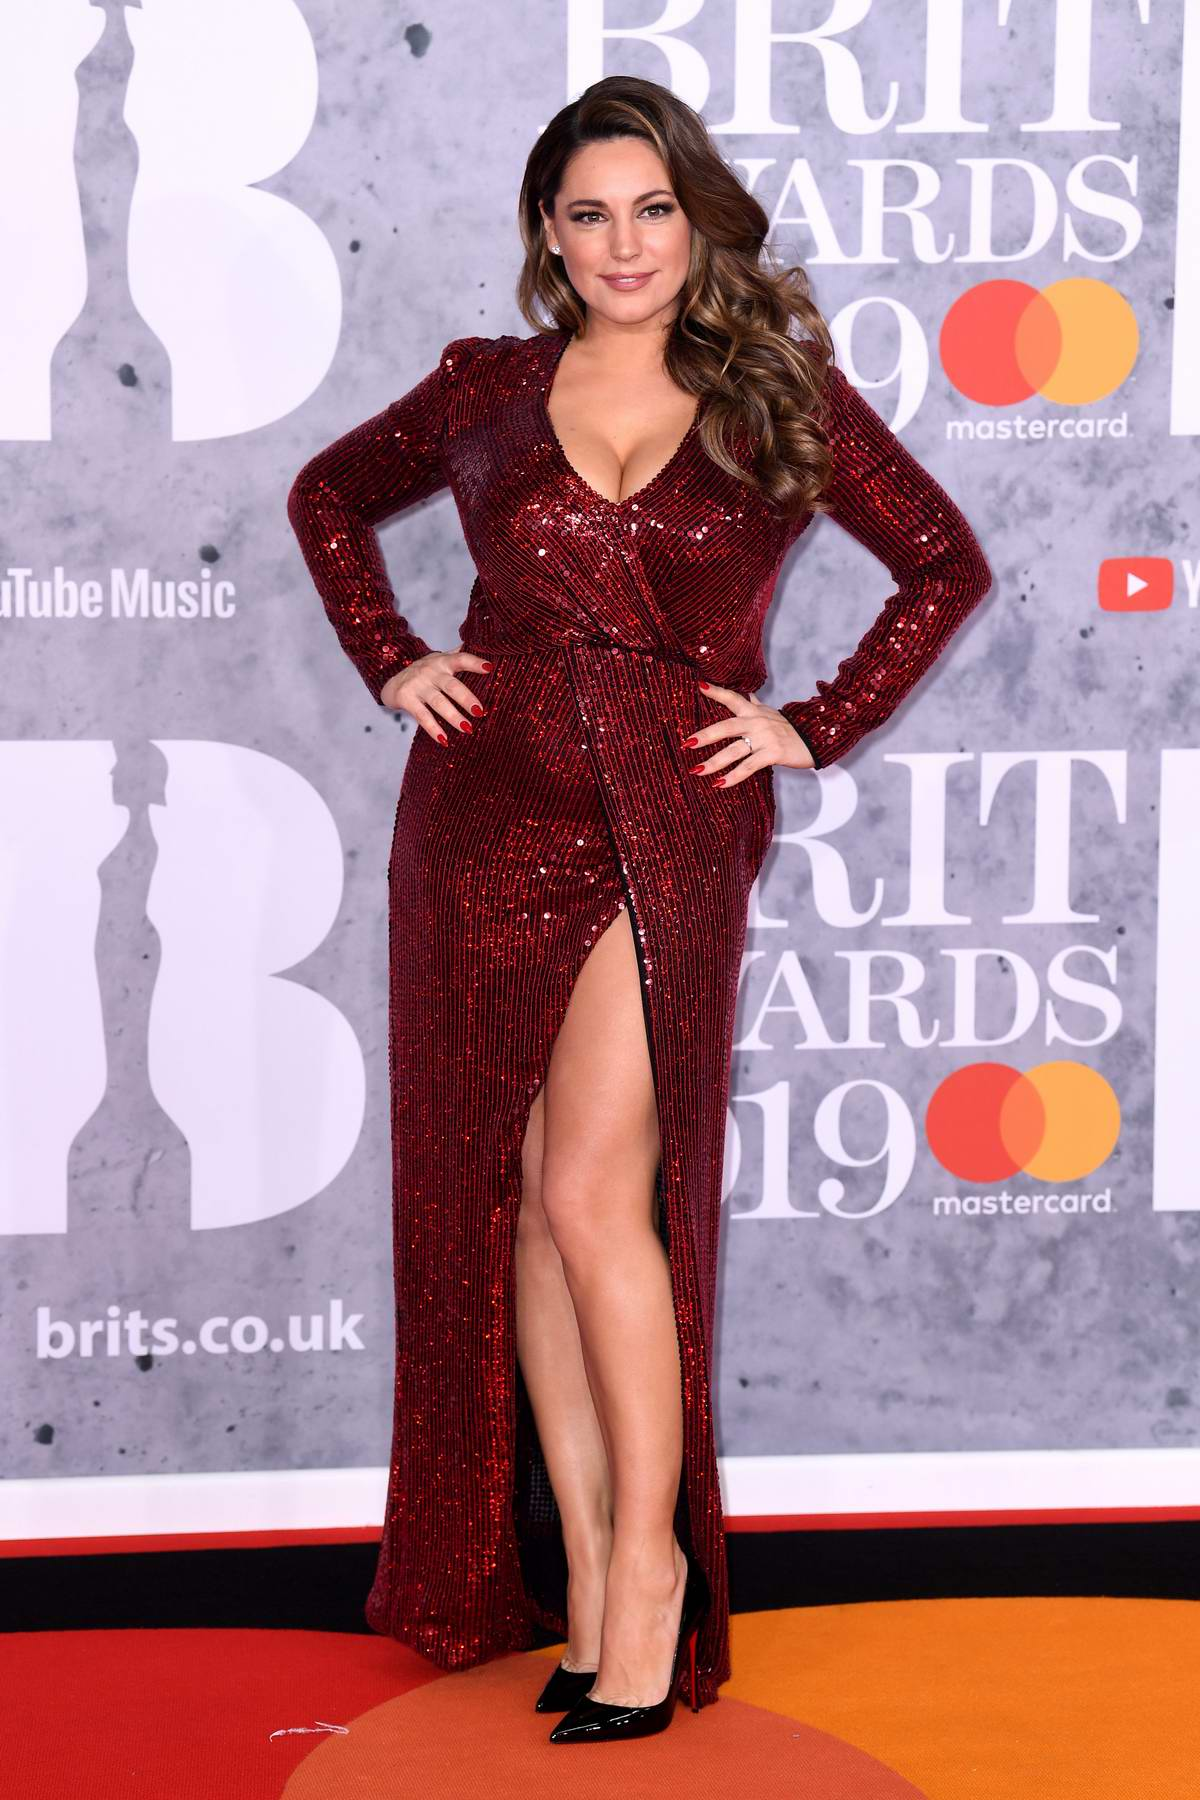 Kelly Brook attends The BRIT Awards 2019 held at The O2 Arena in London, UK